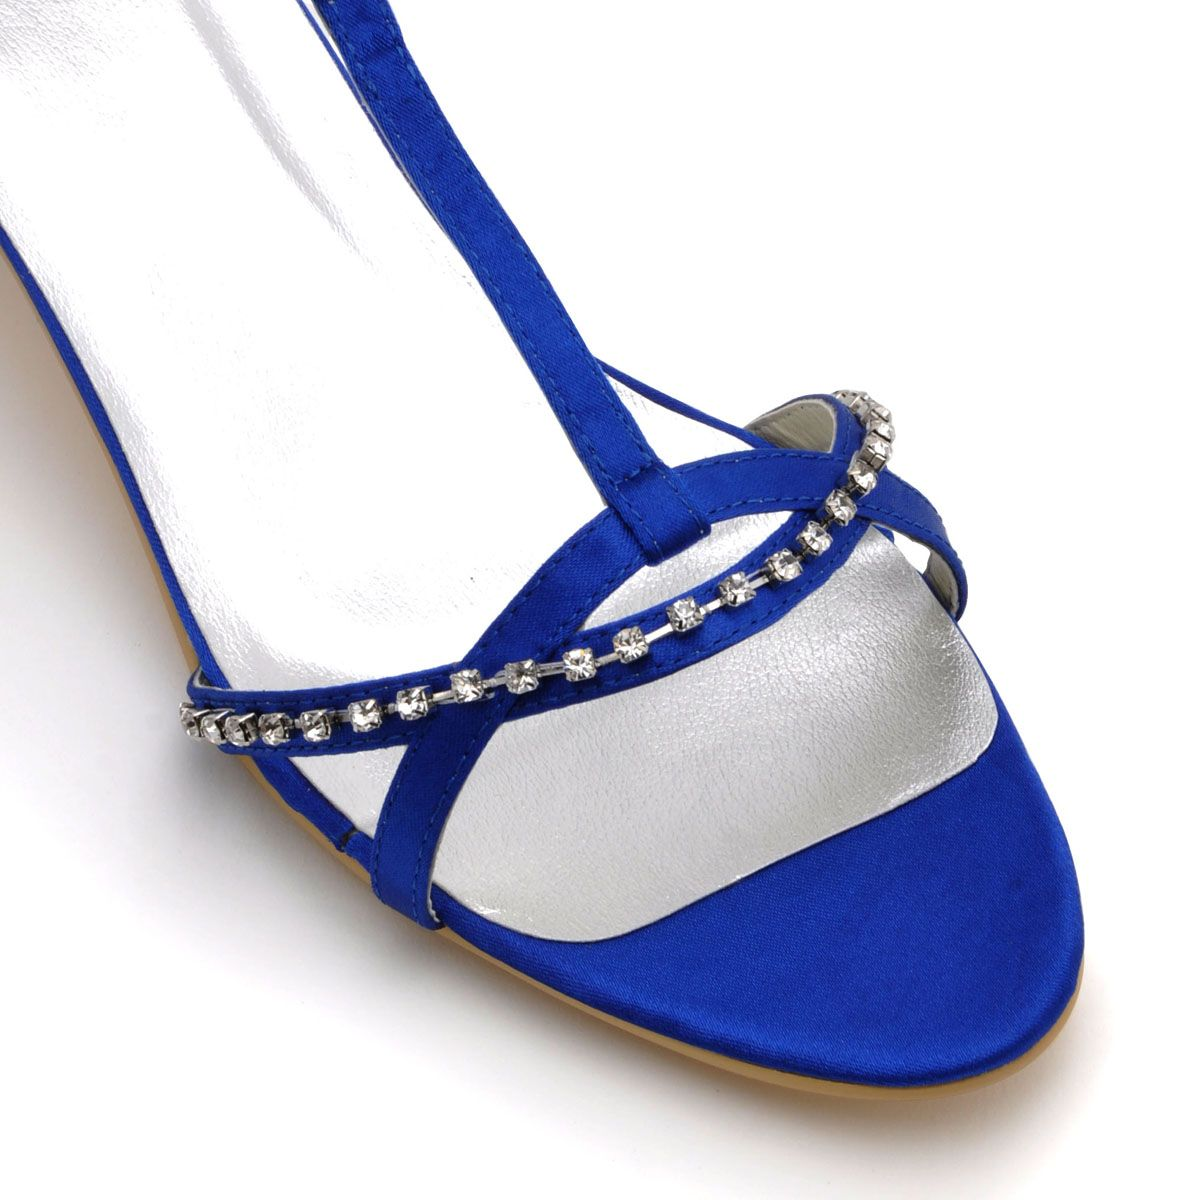 Low-heeled Party Shoes Open Toe Satin Wedding Shoes Diamond Chain Decorative Head